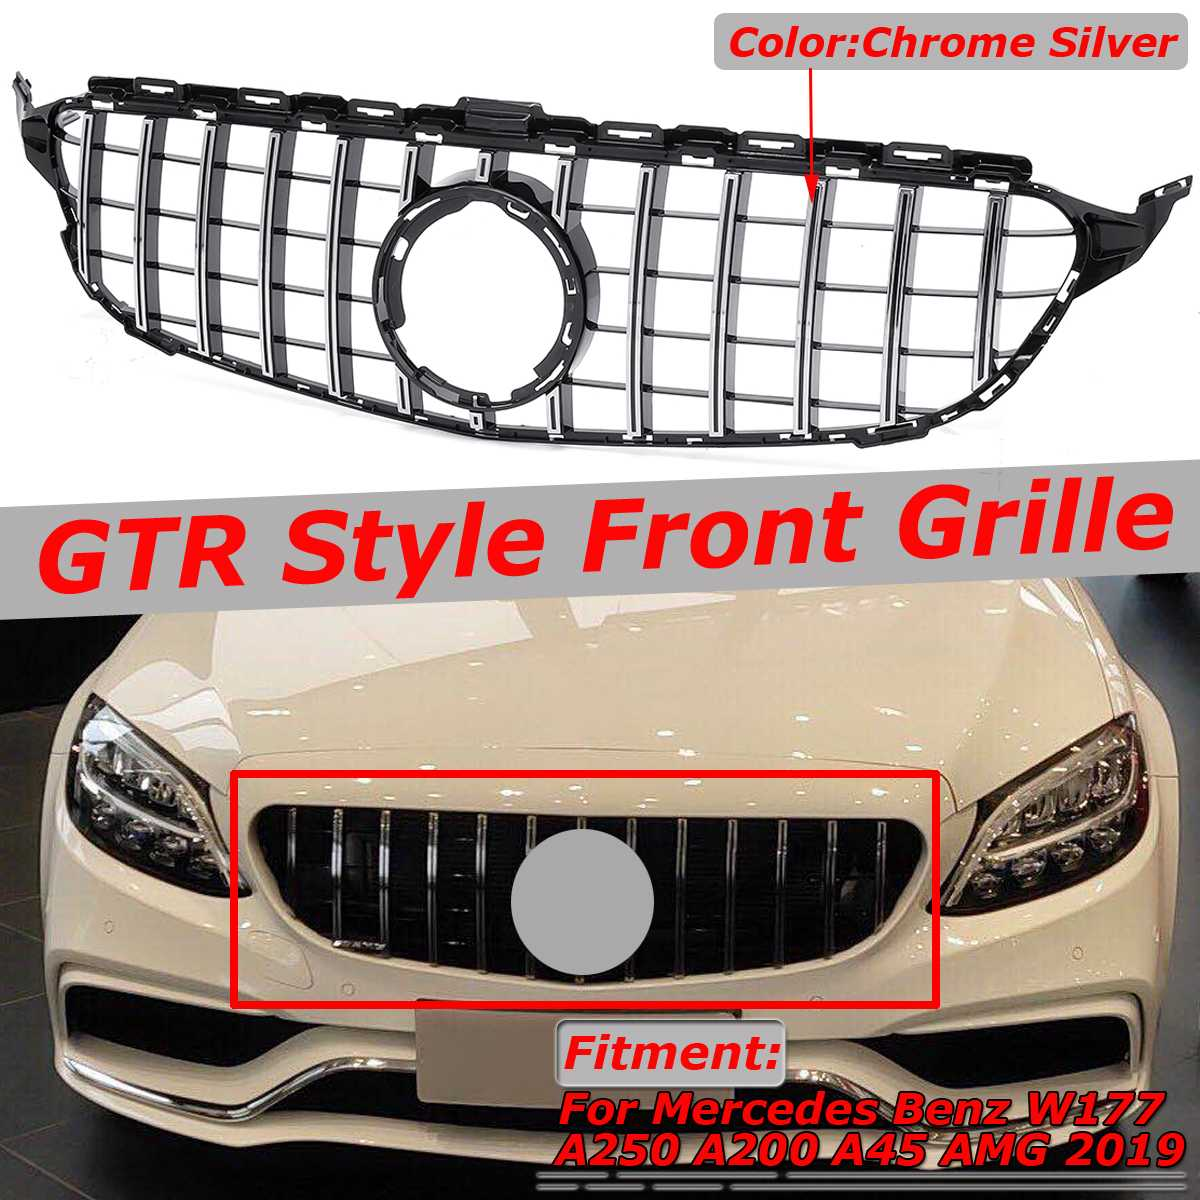 HIgh Quality W205 GTR GT Grill Car Front Bumper Grill Grille <font><b>For</b></font> <font><b>Mercedes</b></font> <font><b>For</b></font> Benz W205 <font><b>C200</b></font> C300 C250 <font><b>2019</b></font>+ Without Camera image